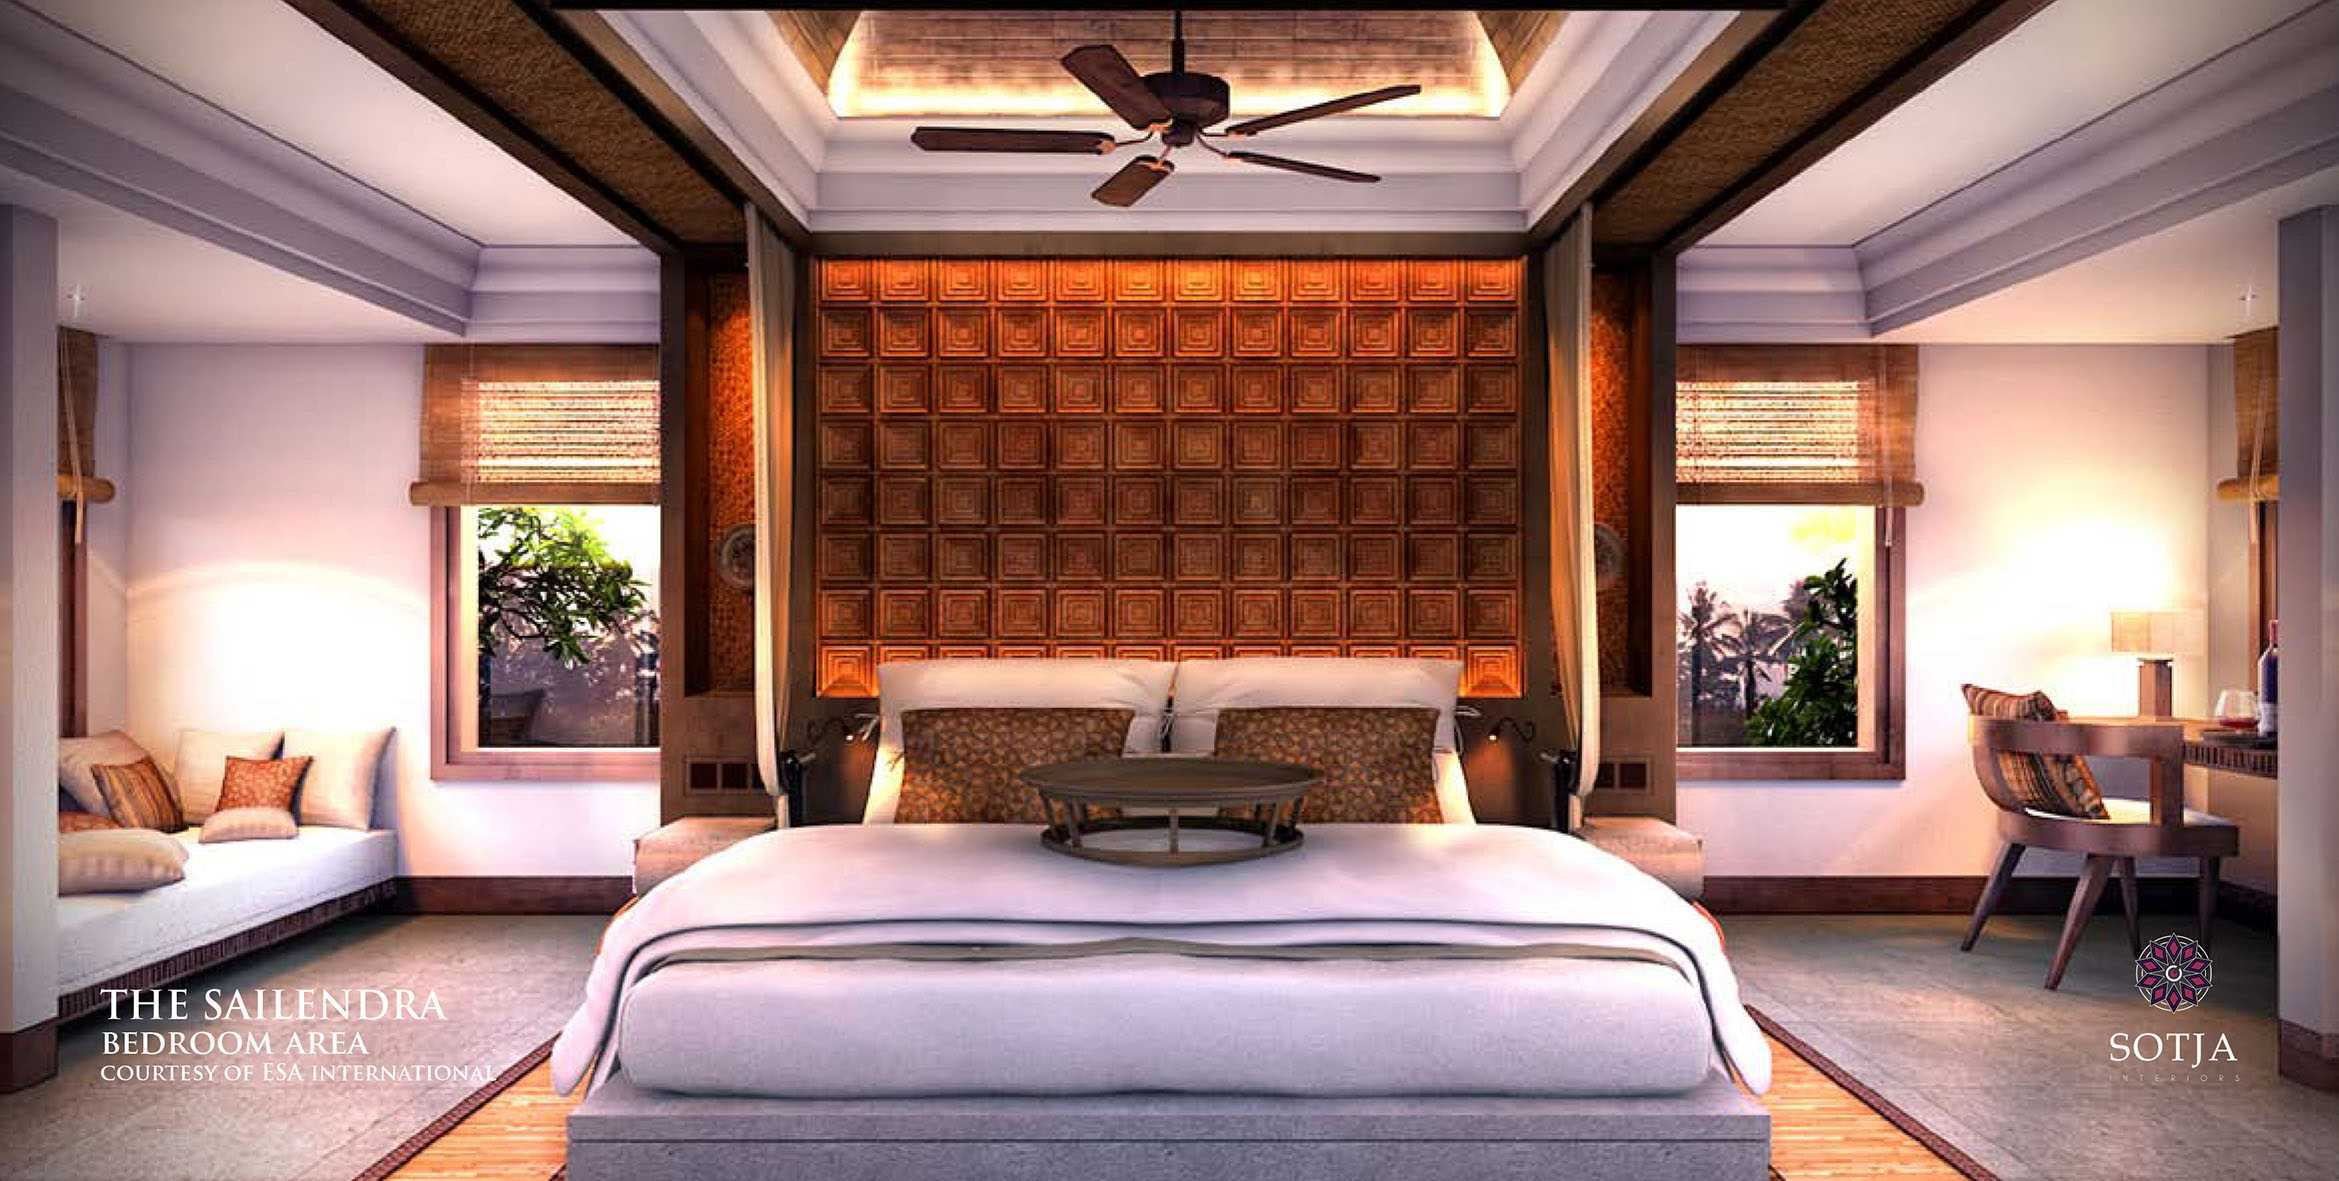 Sotja Interiors The Sailendra At Payangan Ubud Bali, Indonesia Bali, Indonesia Bedroom-Area2   9953